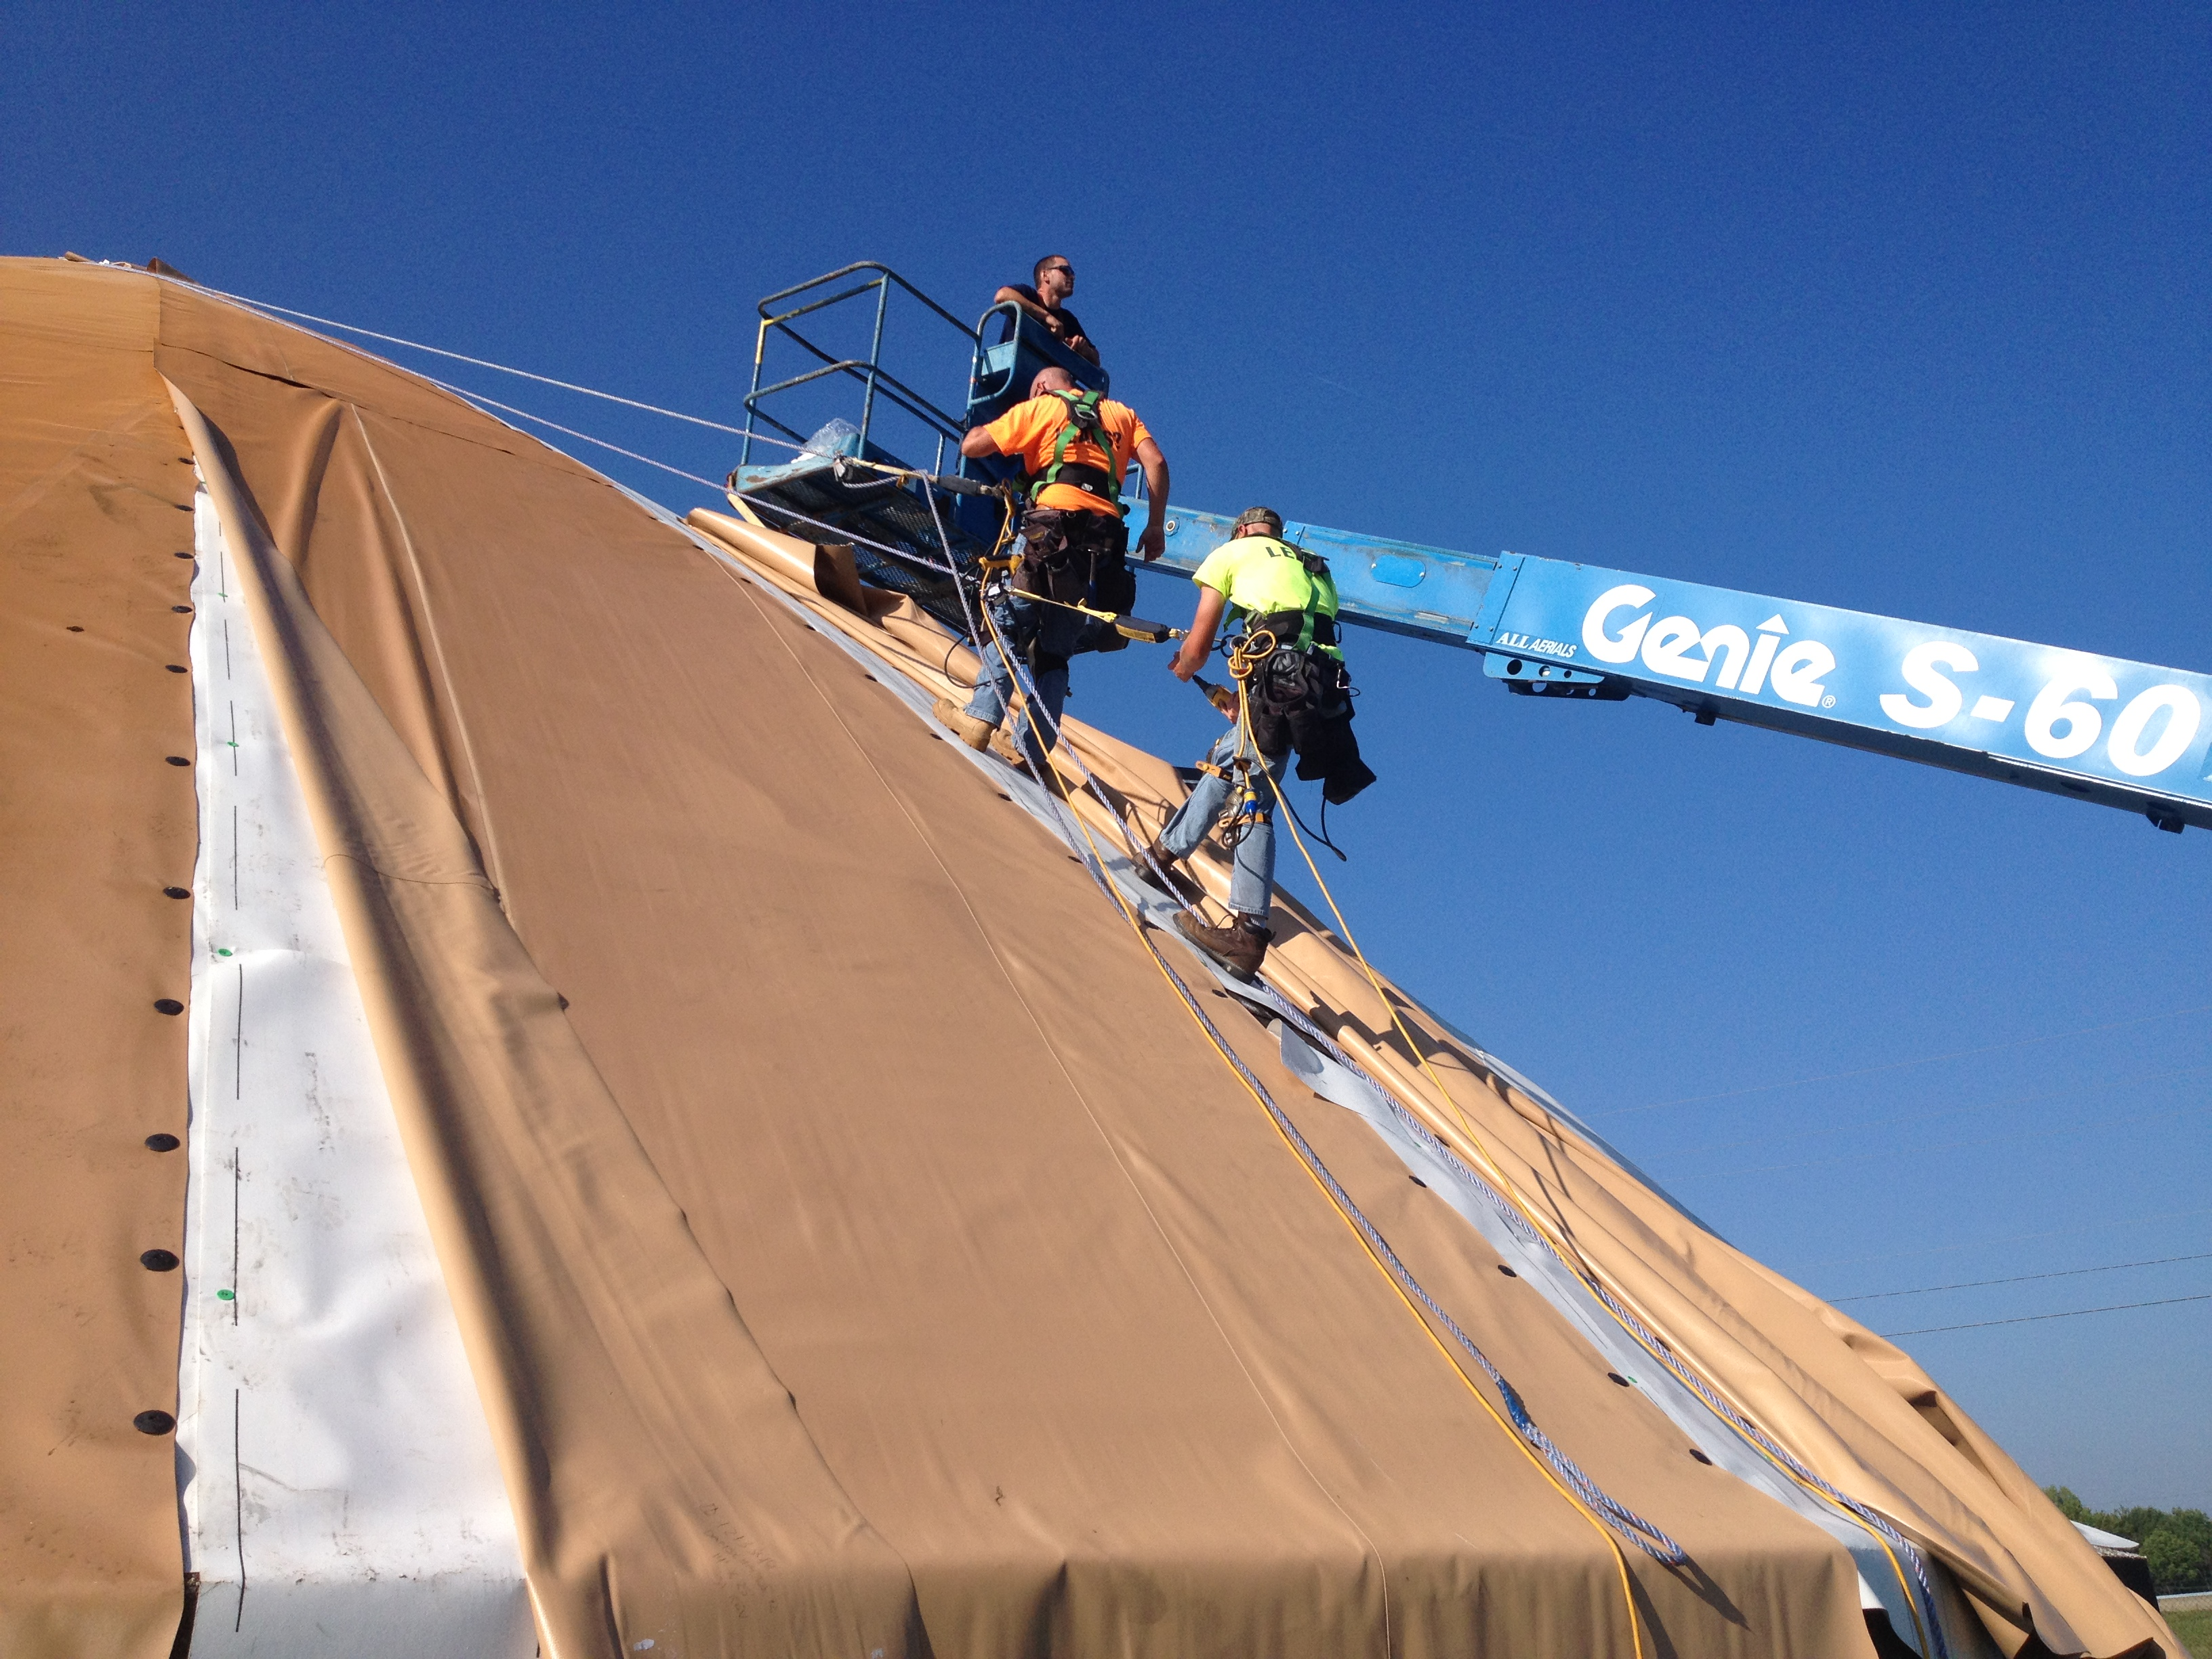 commercial roofing contractors working on a sloped roof